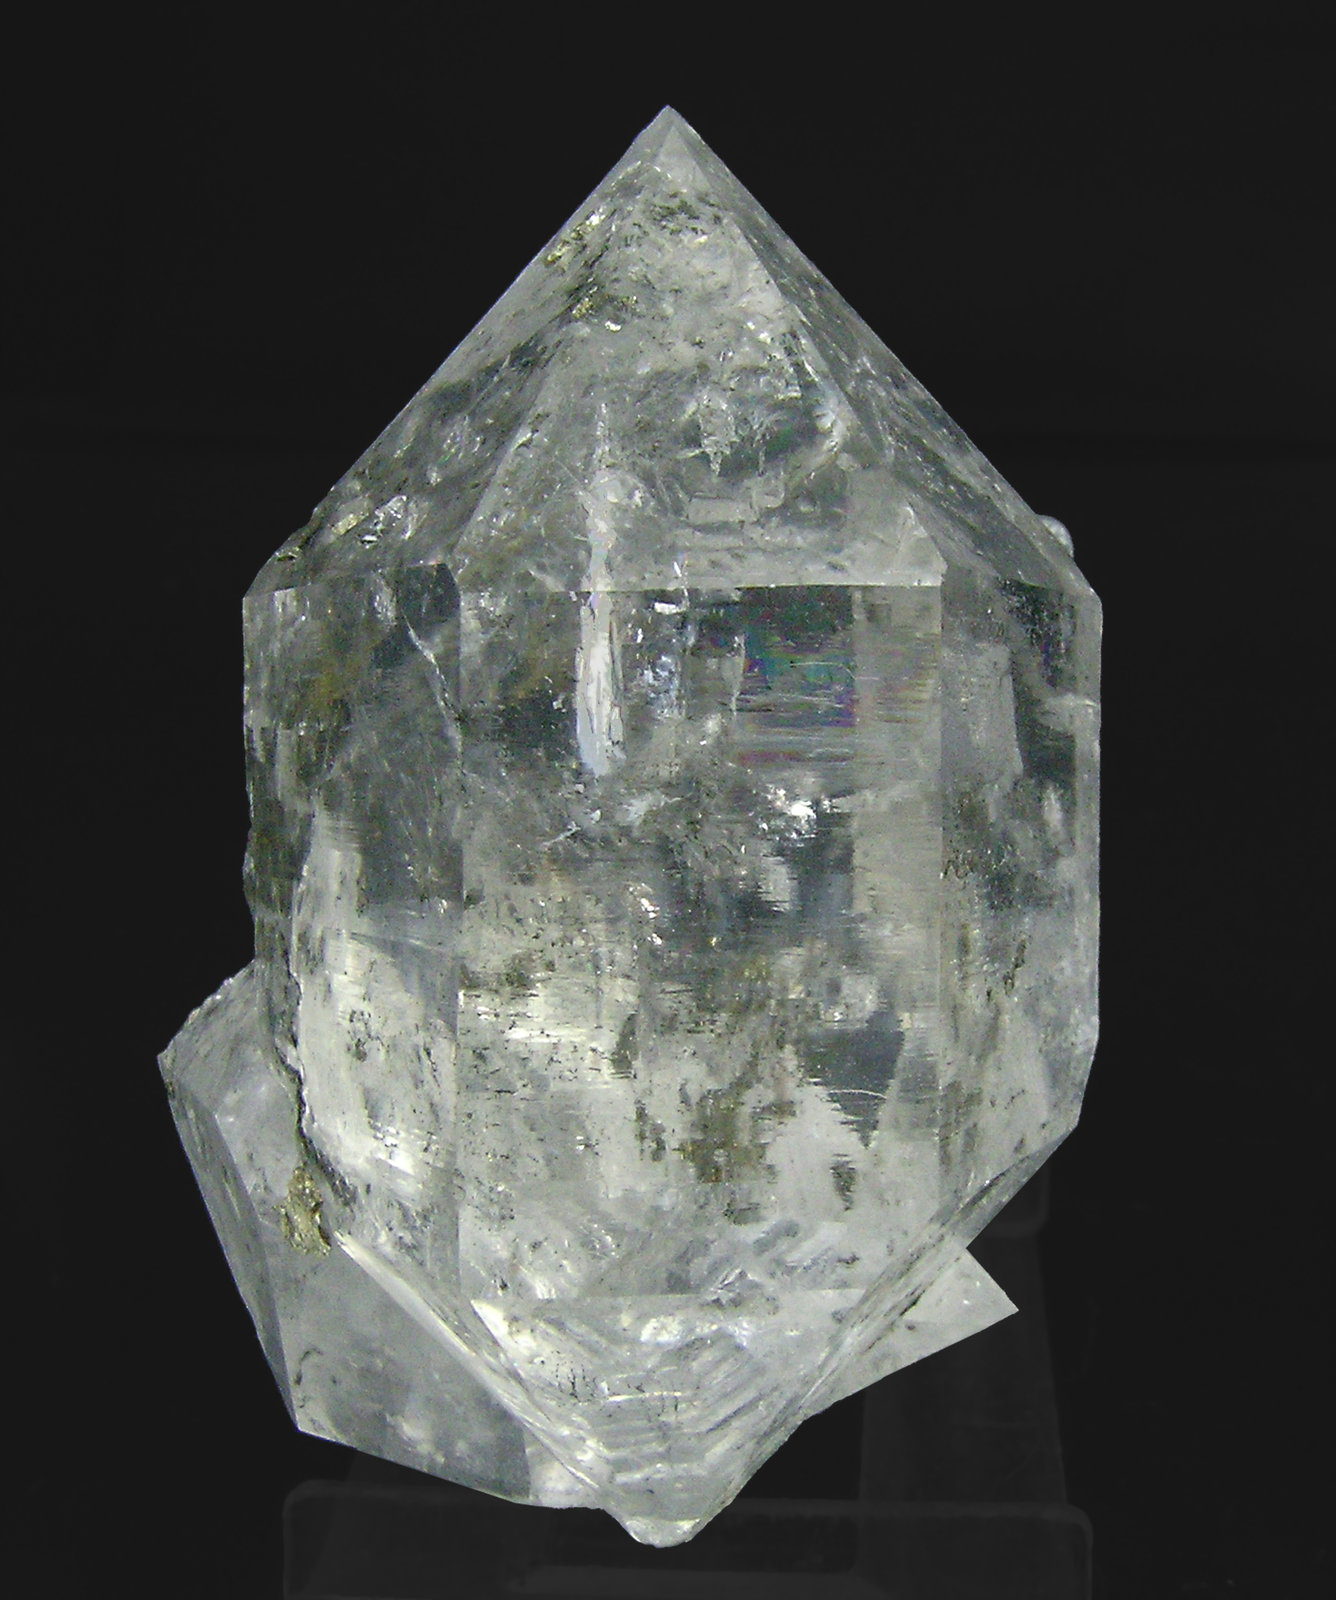 specimens/s_imagesP2/Quartz-NB87P2f.jpg